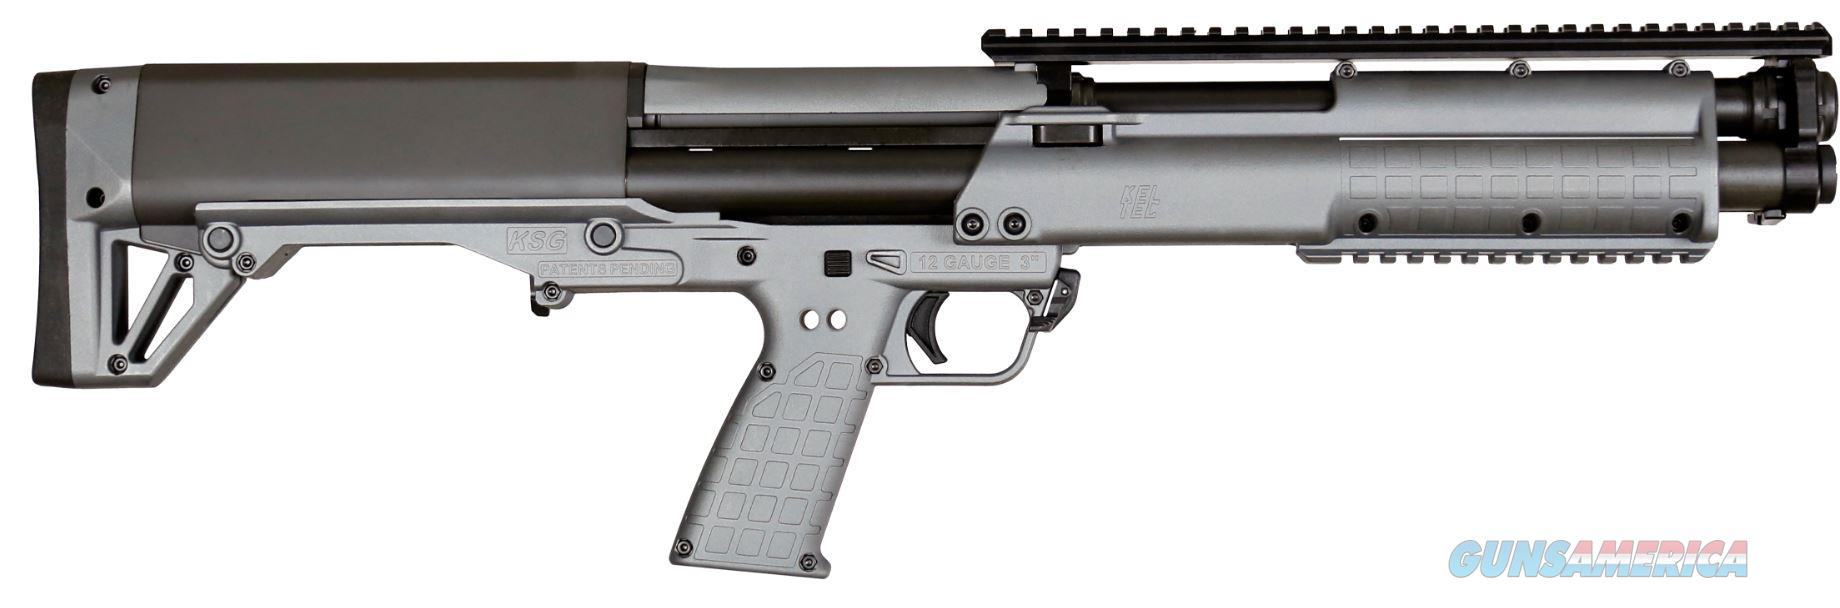 Kel-Tec KSG 12 Gauge Tactical Shotgun - Synthetic Gray - New in Box  Guns > Shotguns > Kel-Tec Shotguns > KSG